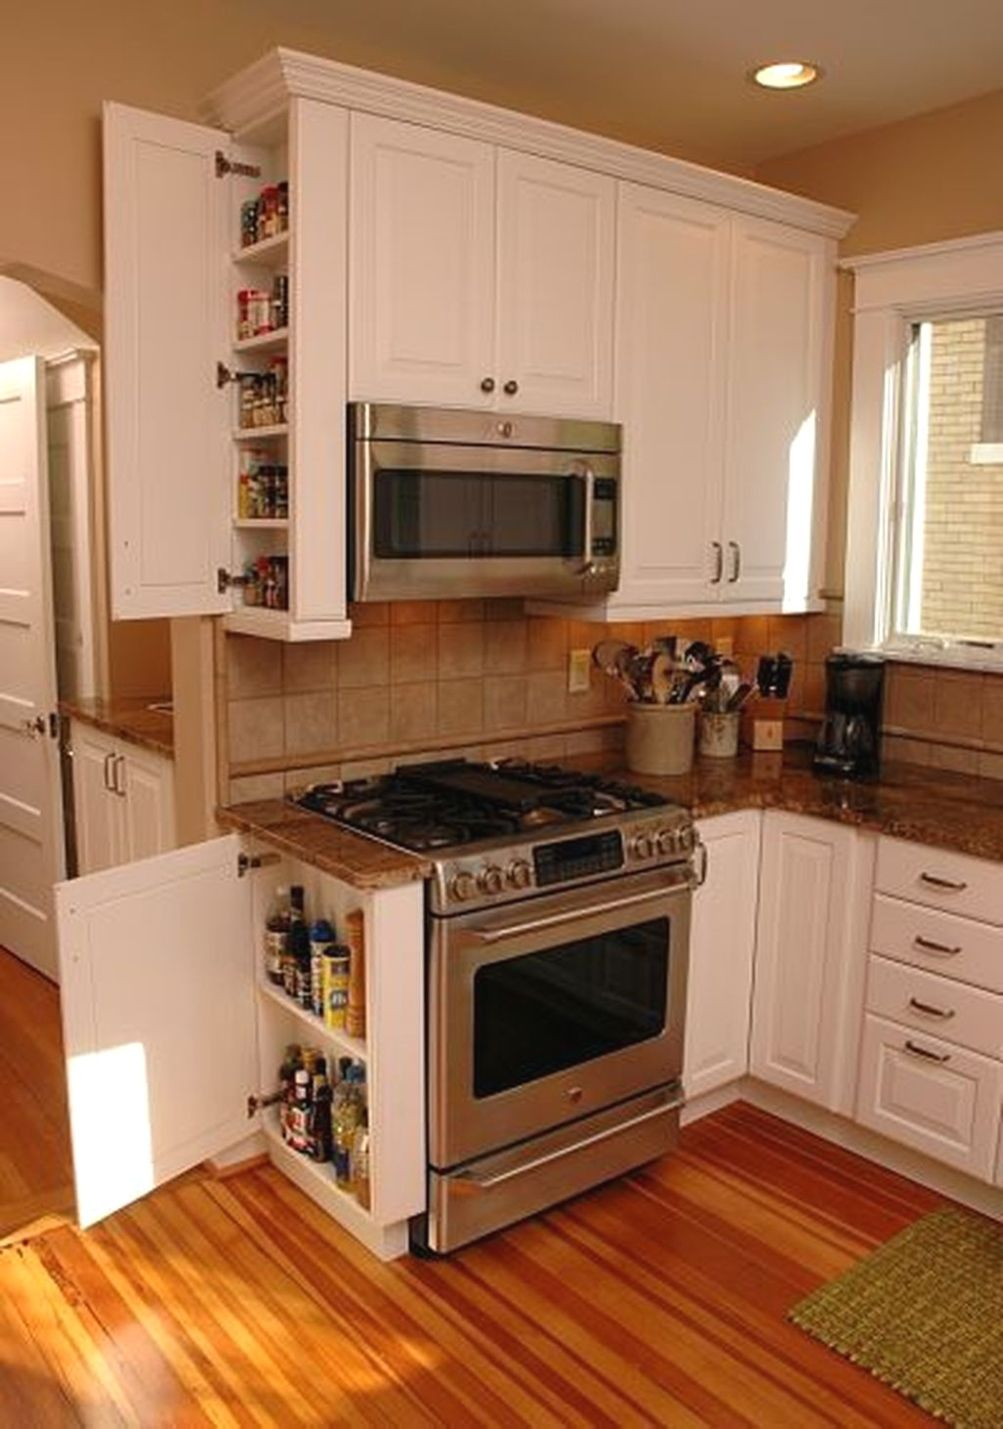 kitchen remodeling tucson #kitchenremodeling | kitchen remodeling in